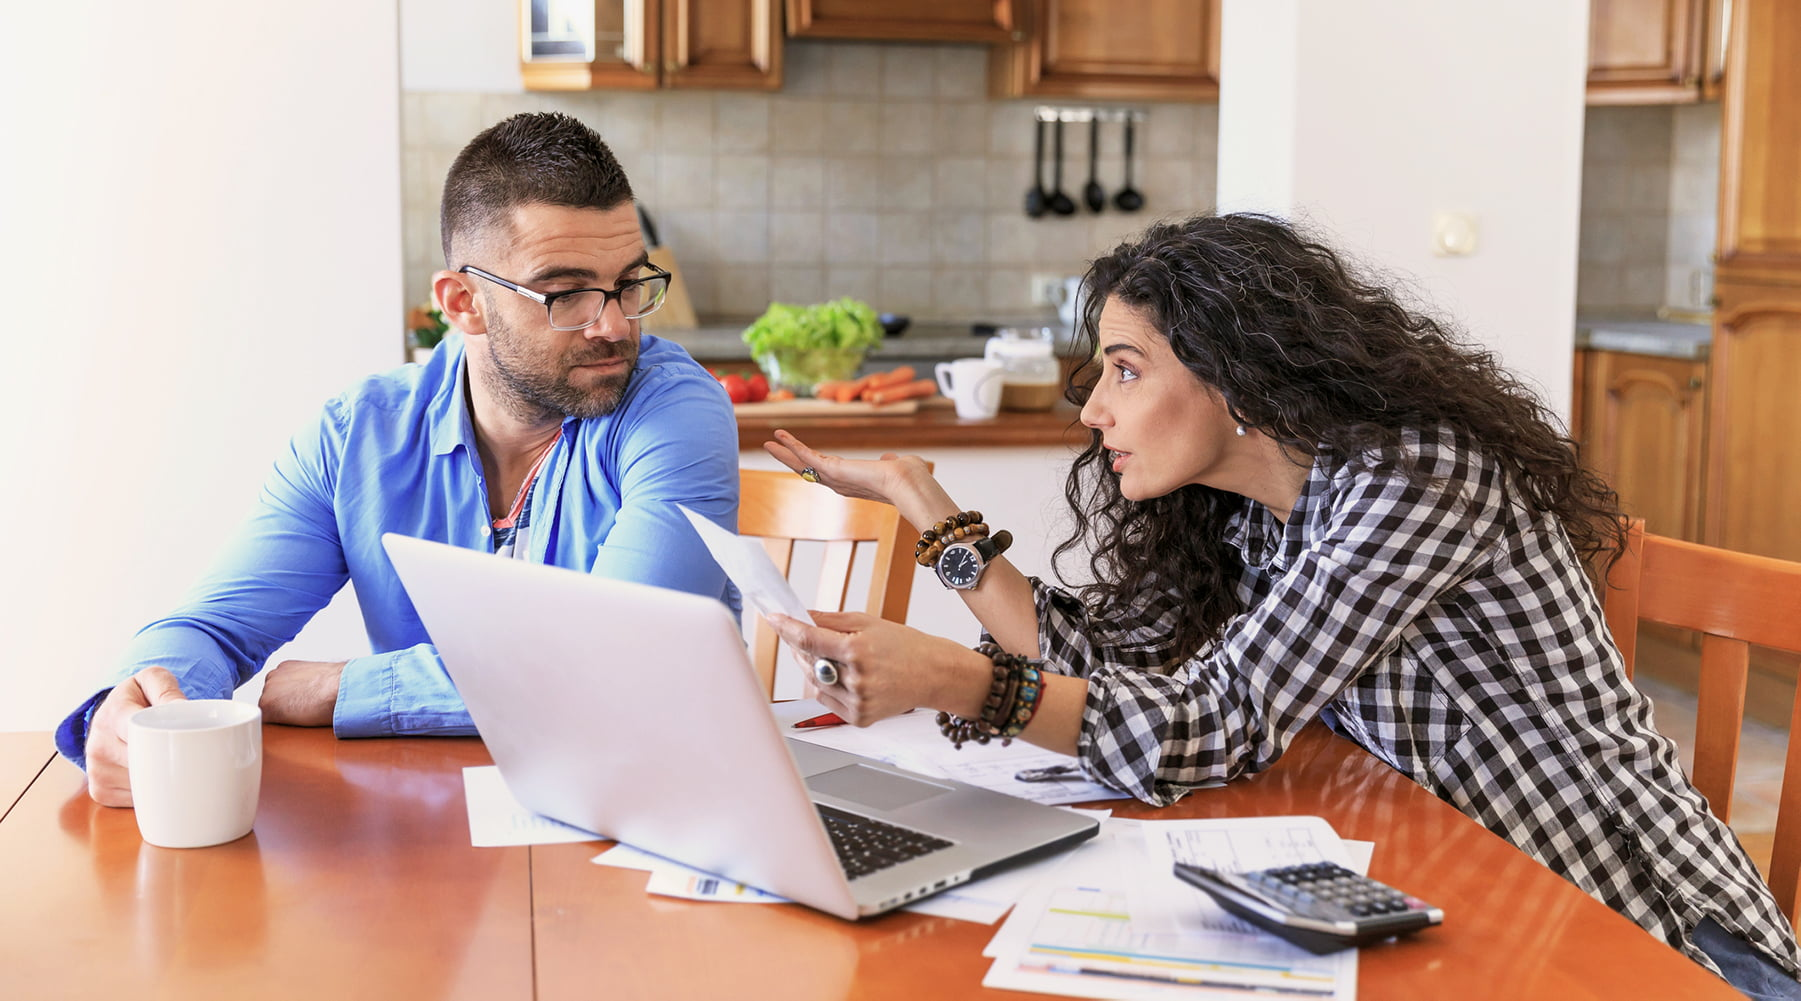 Recovery Coach image of man and women talking over paperwork at kitchen table